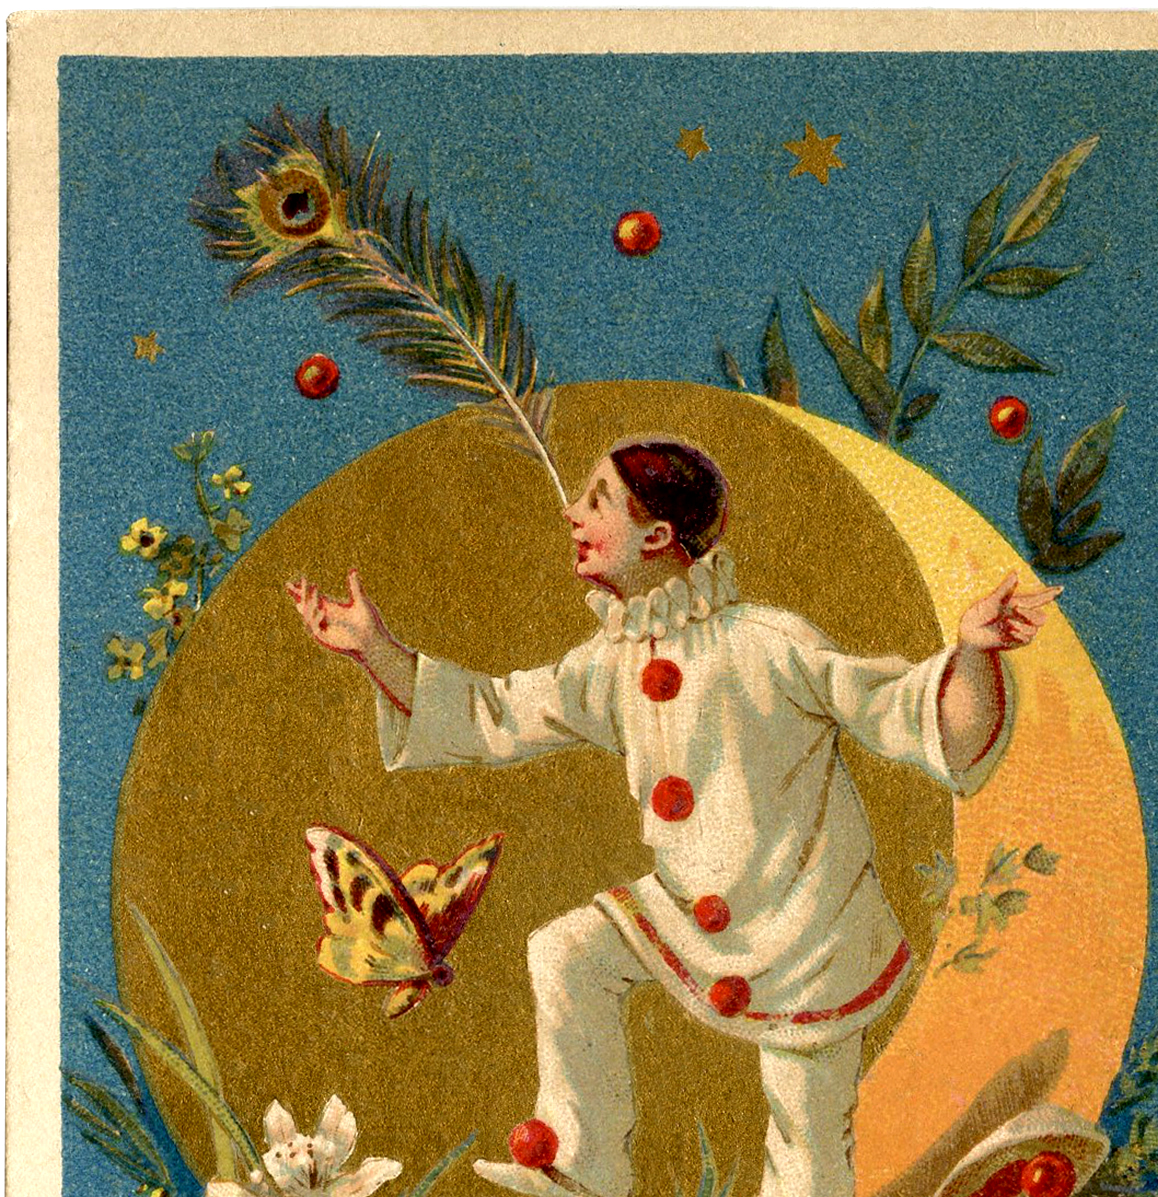 Vintage Pierrot Clown Image  The Graphics Fairy